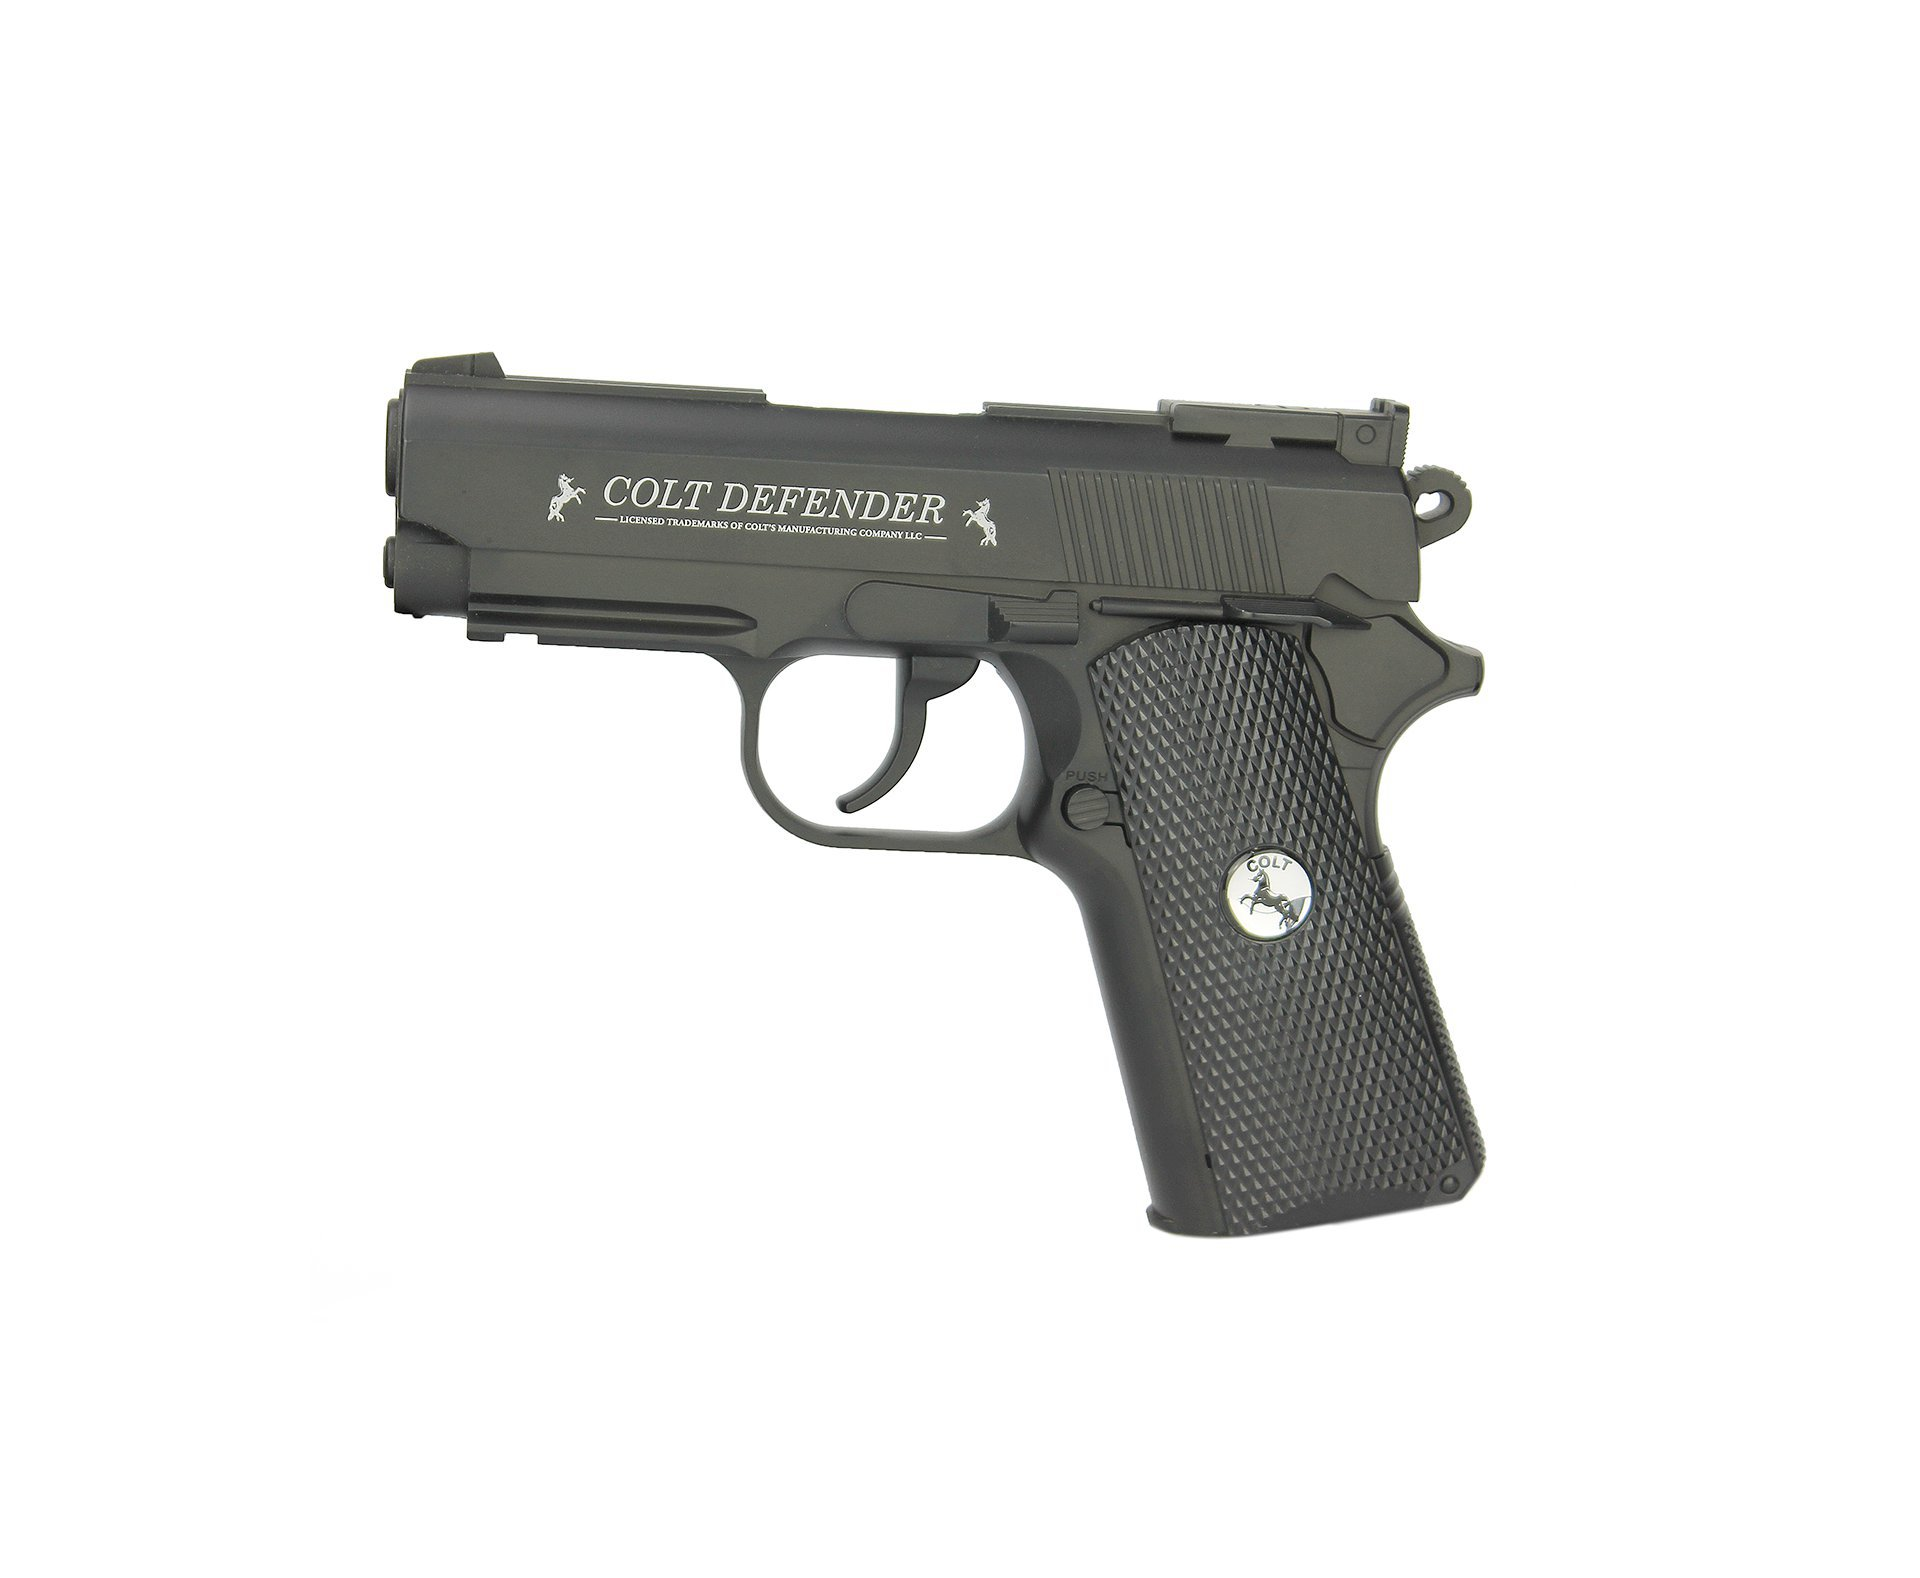 Pistola De Pressão Co2 Colt Defender Full Metal 4,5mm